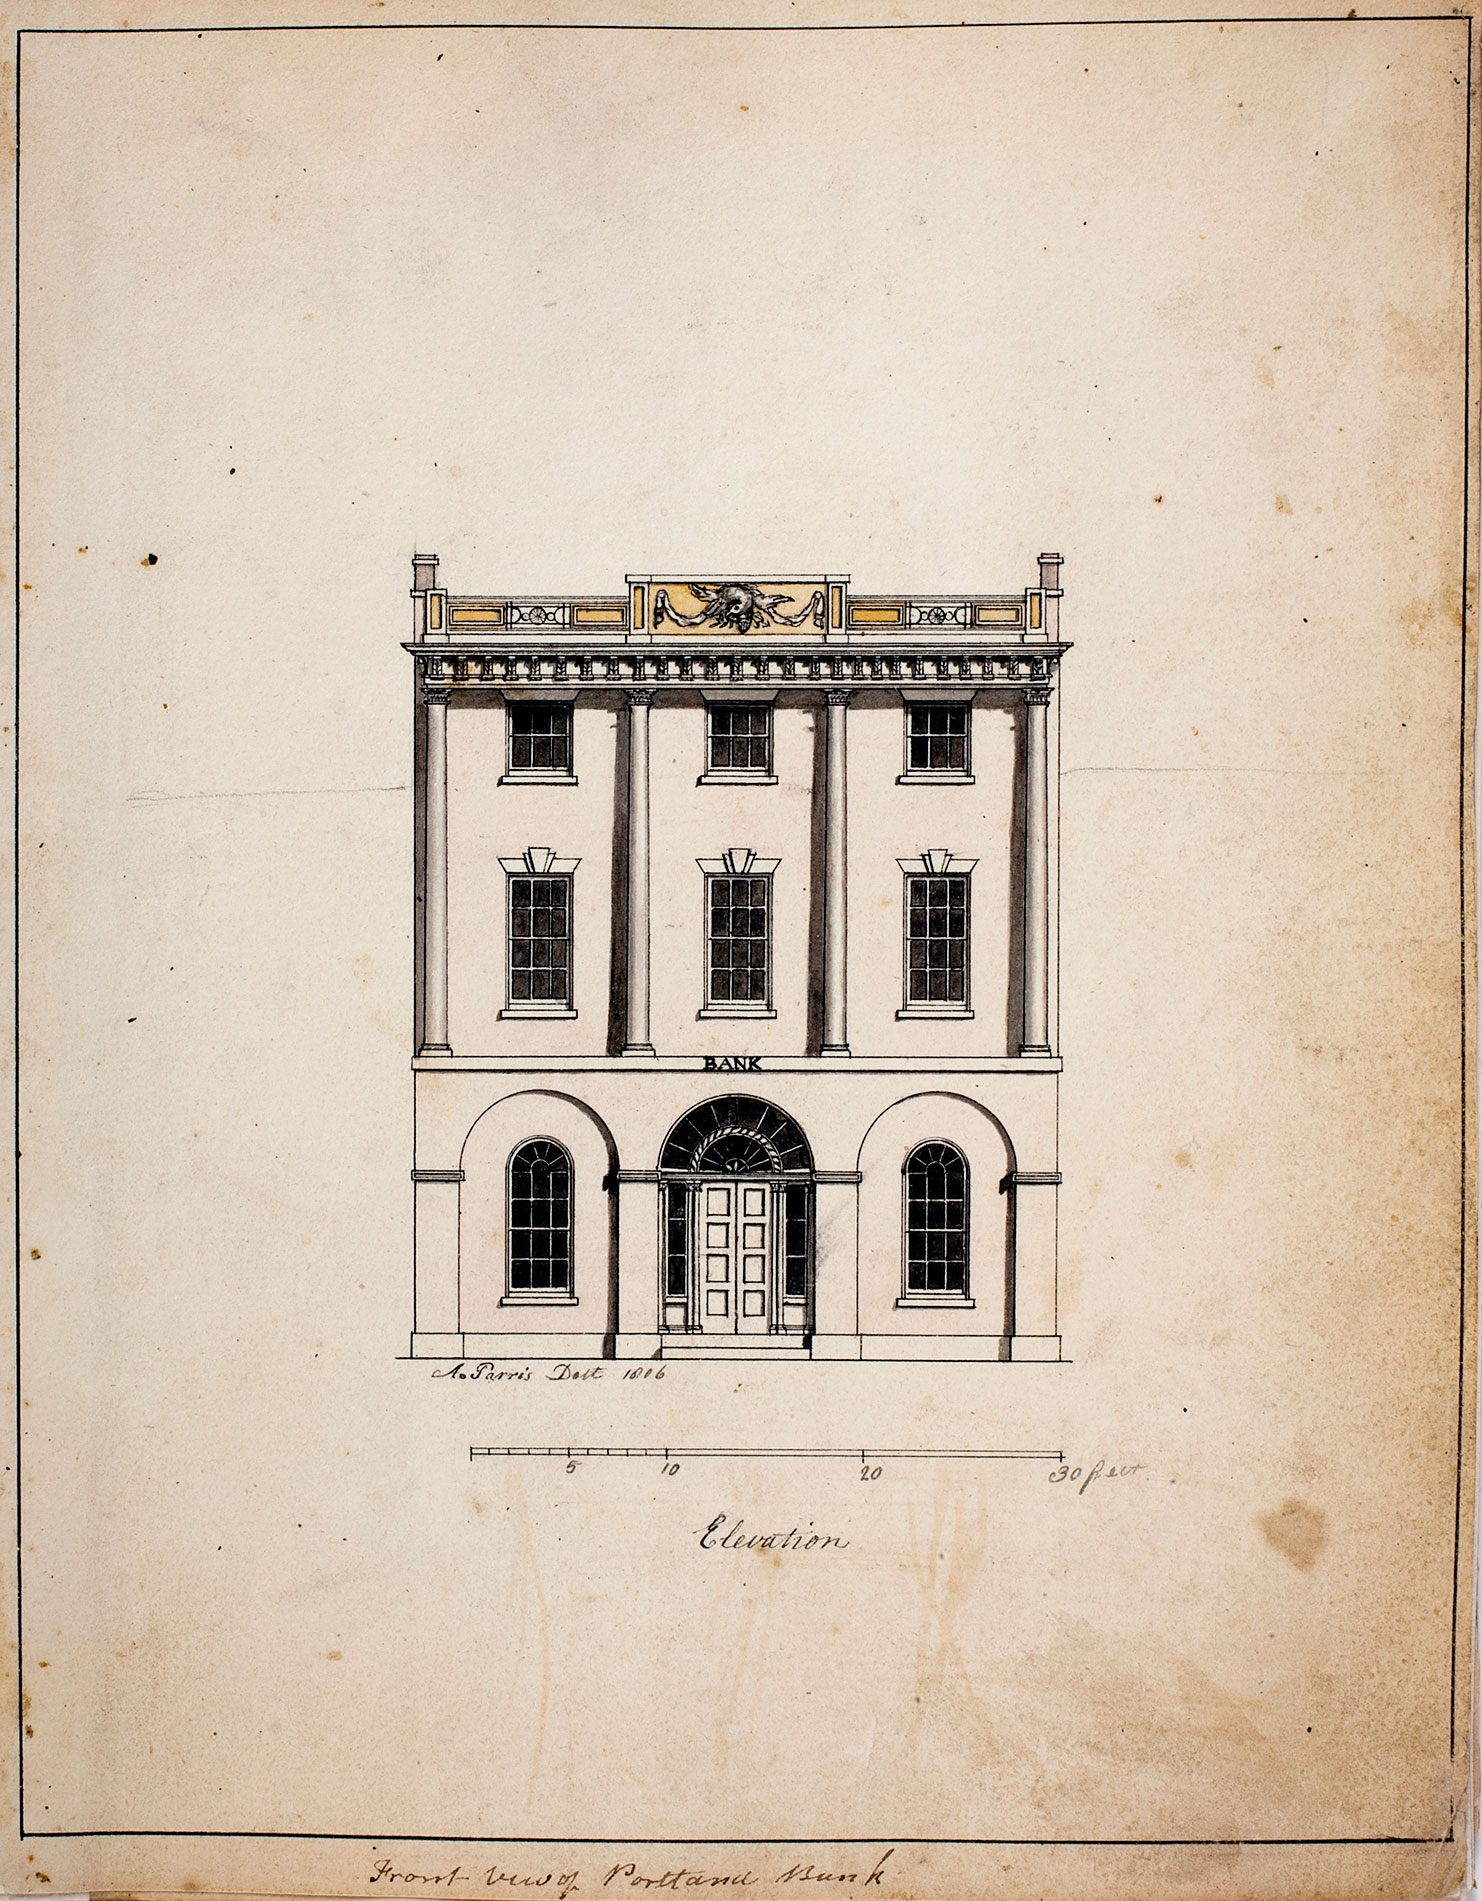 Alexander Parris, Front View of Portland Bank, 1806